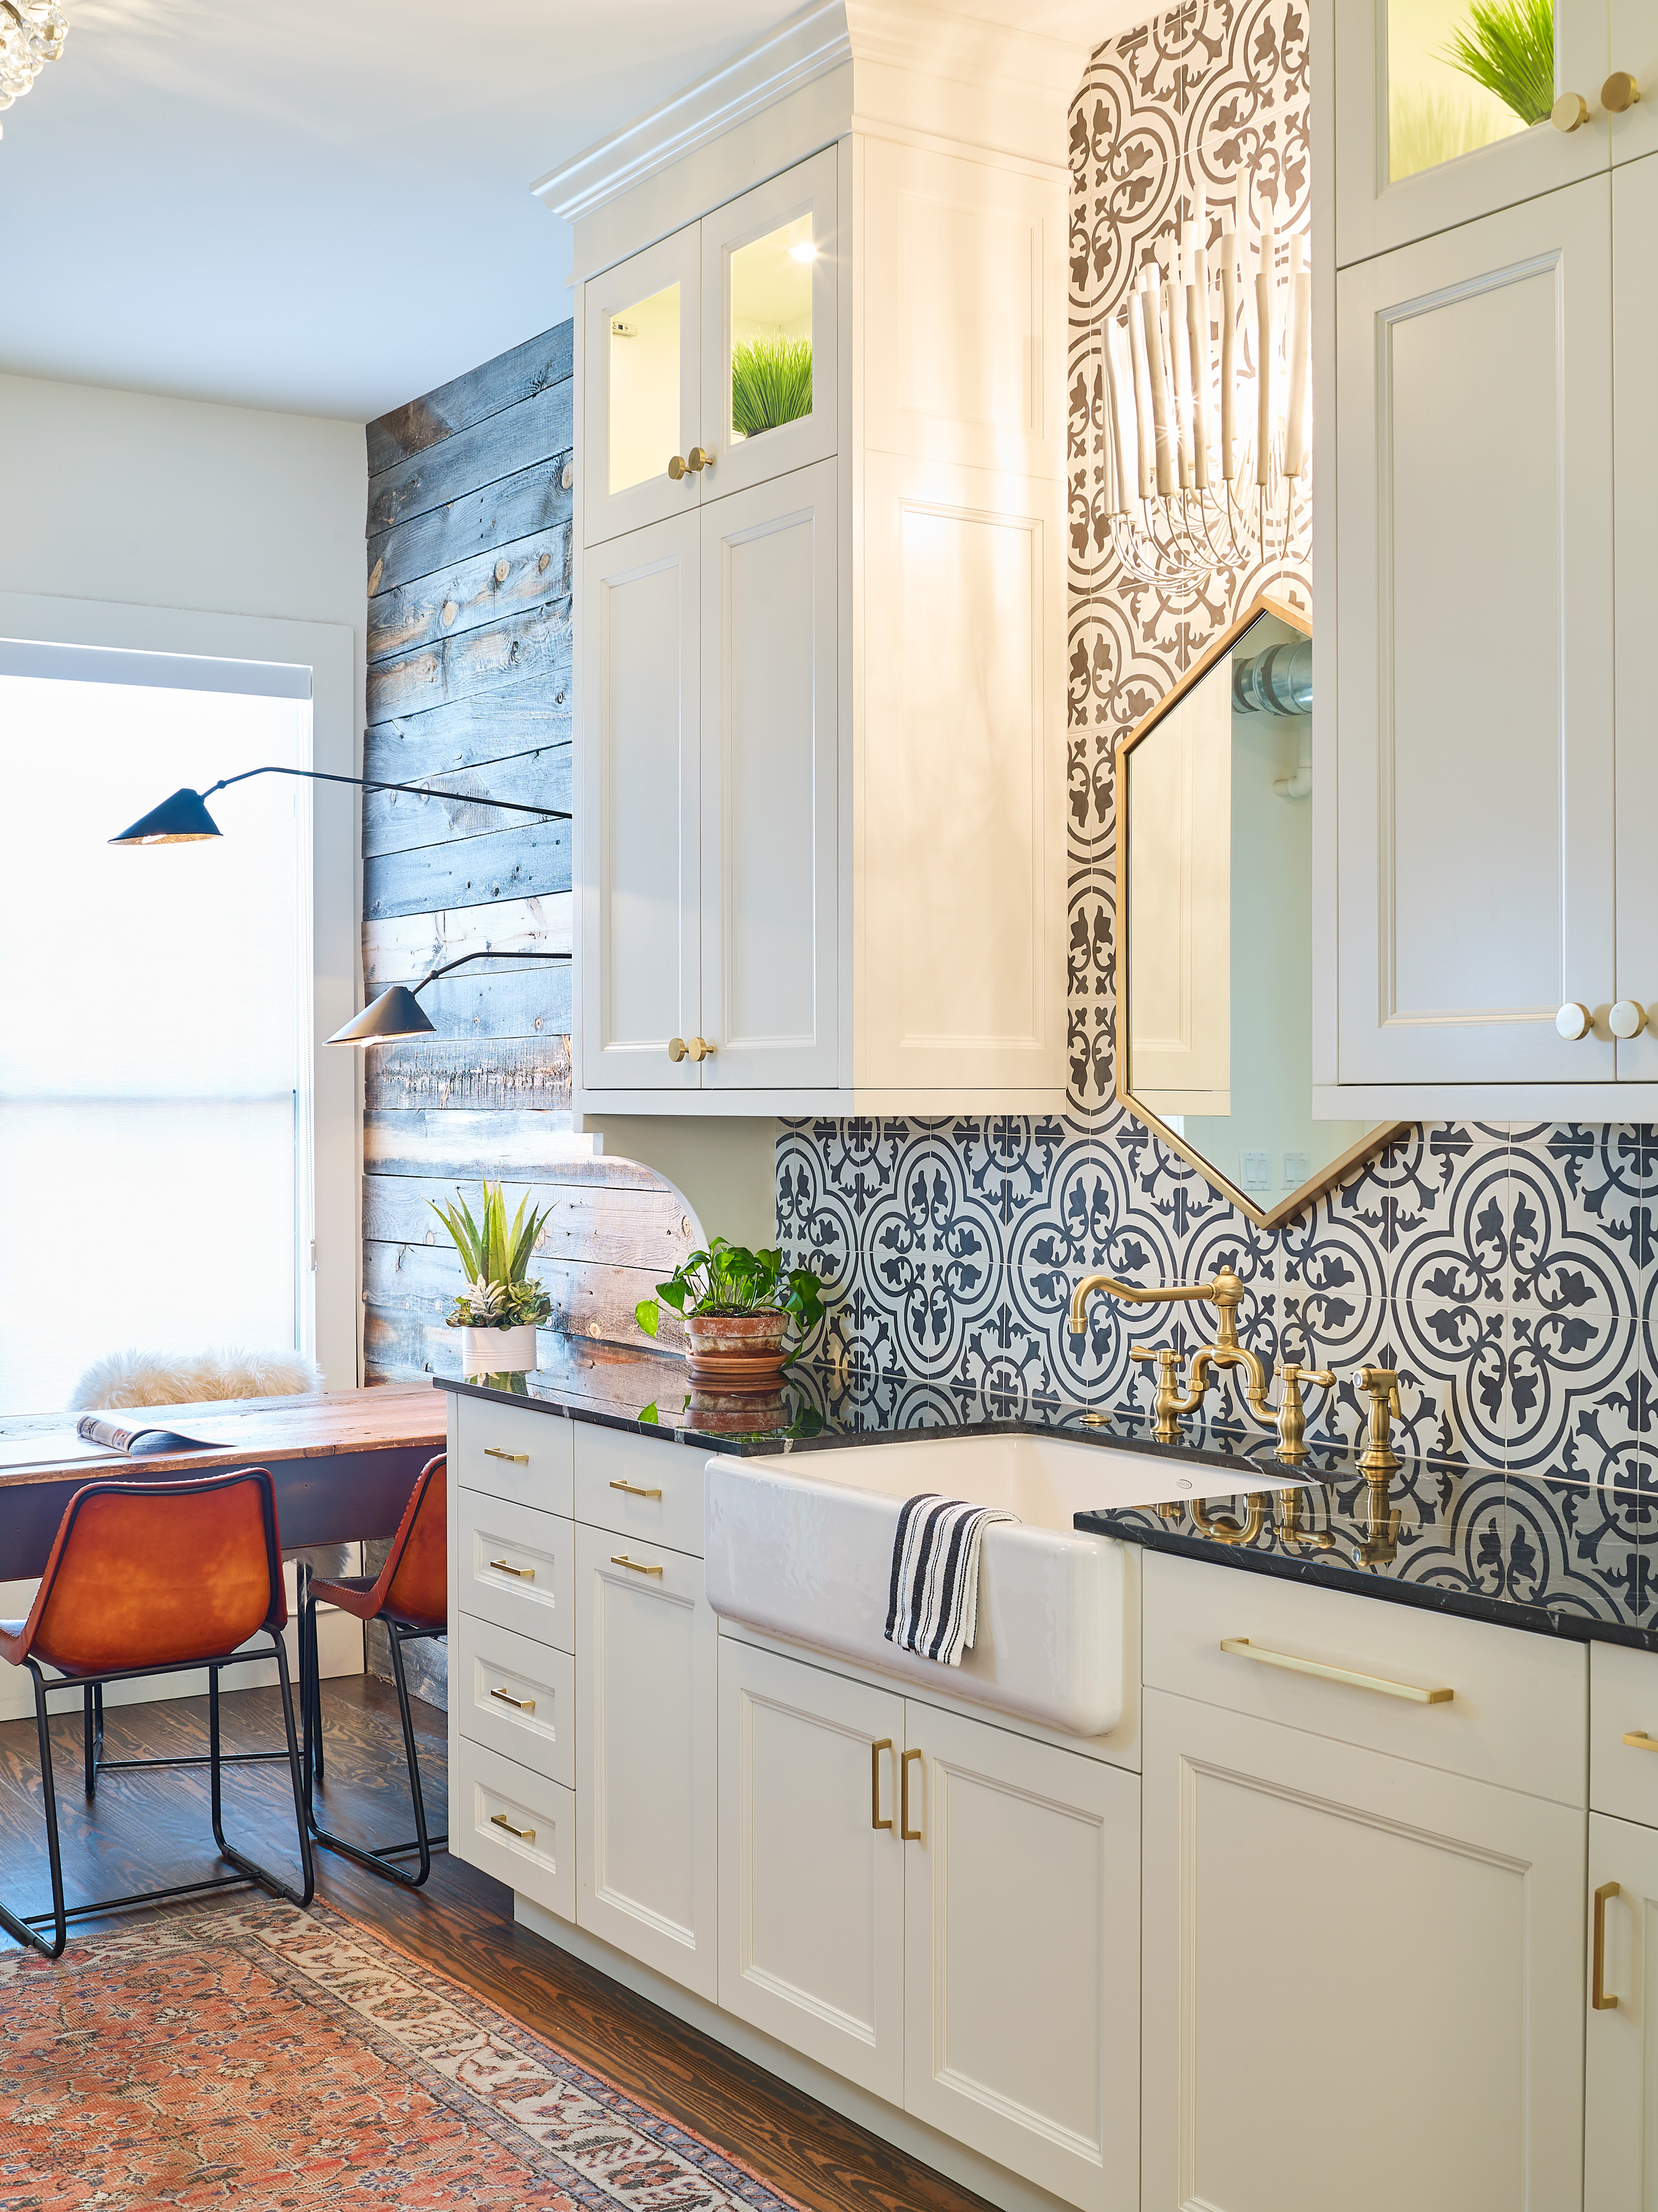 WEB_pam_aspenleaf_showroom_kitchen_wht_73025.jpg